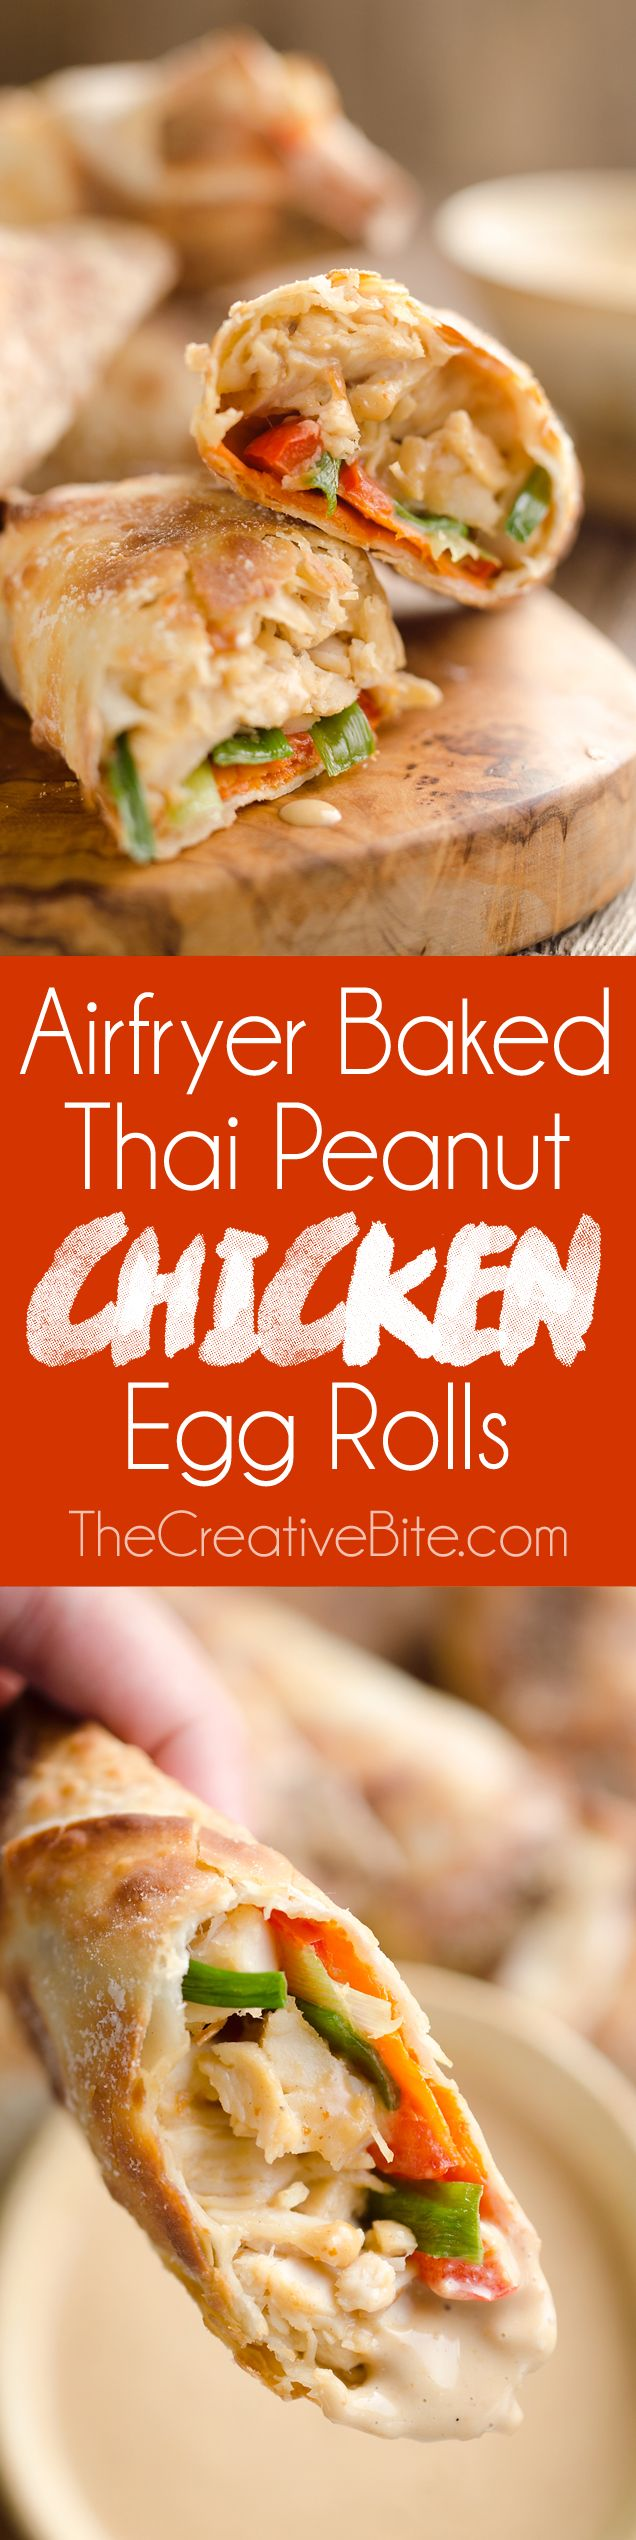 Airfryer Baked Thai Peanut Chicken Egg Rolls are a light and healthy recipe made in your Airfryer or oven. Chicken is tossed with creamy Thai peanut sauce, carrots, red peppers and green onions and rolled in crispy egg roll wrappers for a flavorful dinner you can make in less than 20 minutes. #Airfryer #EggRolls #ThaiPeanut